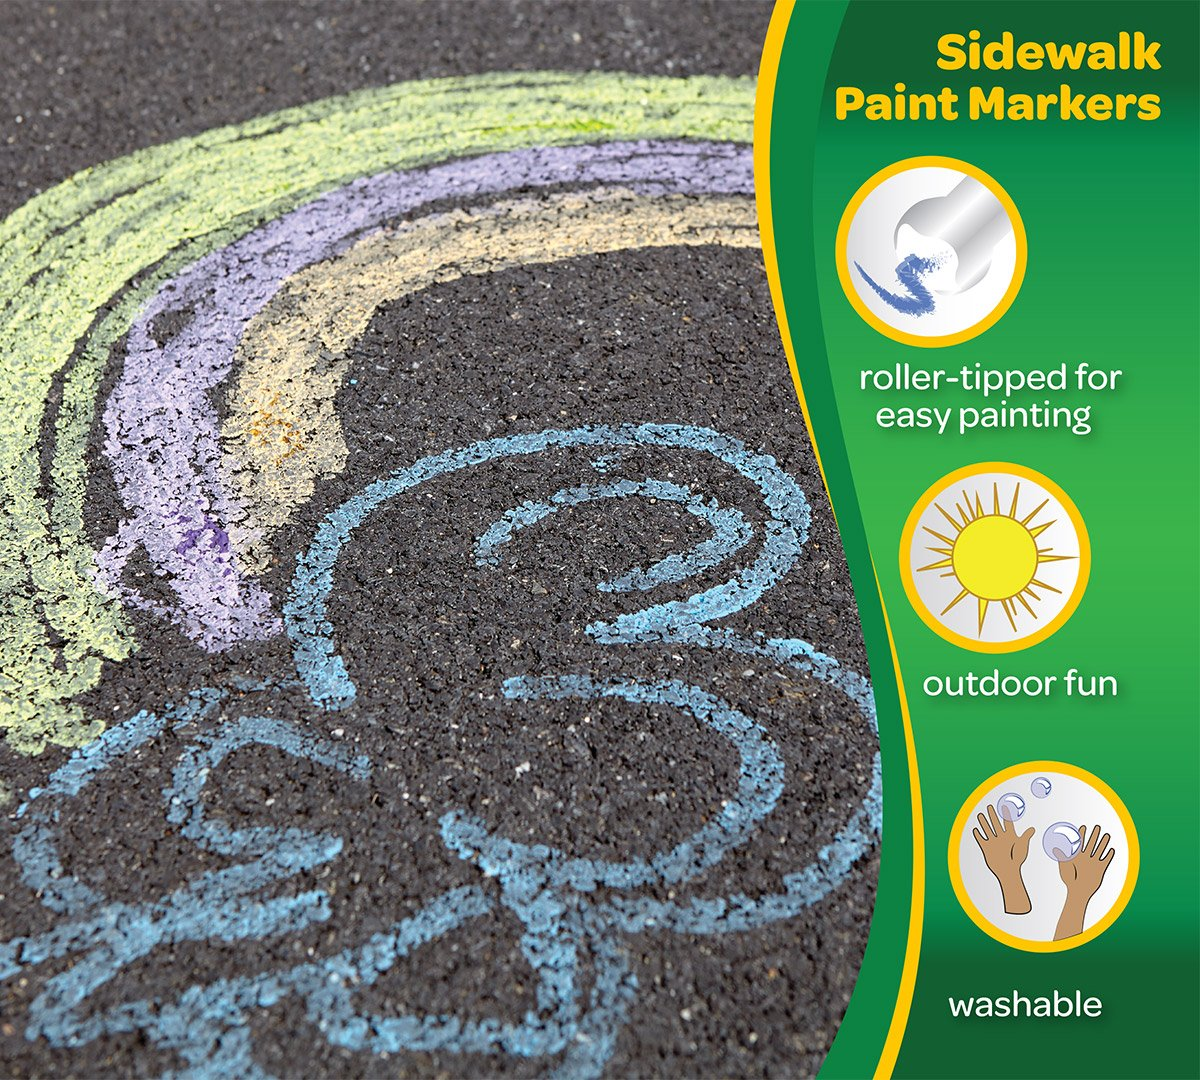 Crayola Neon Paint Markers, Outdoor Toy Sidewalk Paint, 4 Color Pack by Crayola (Image #2)